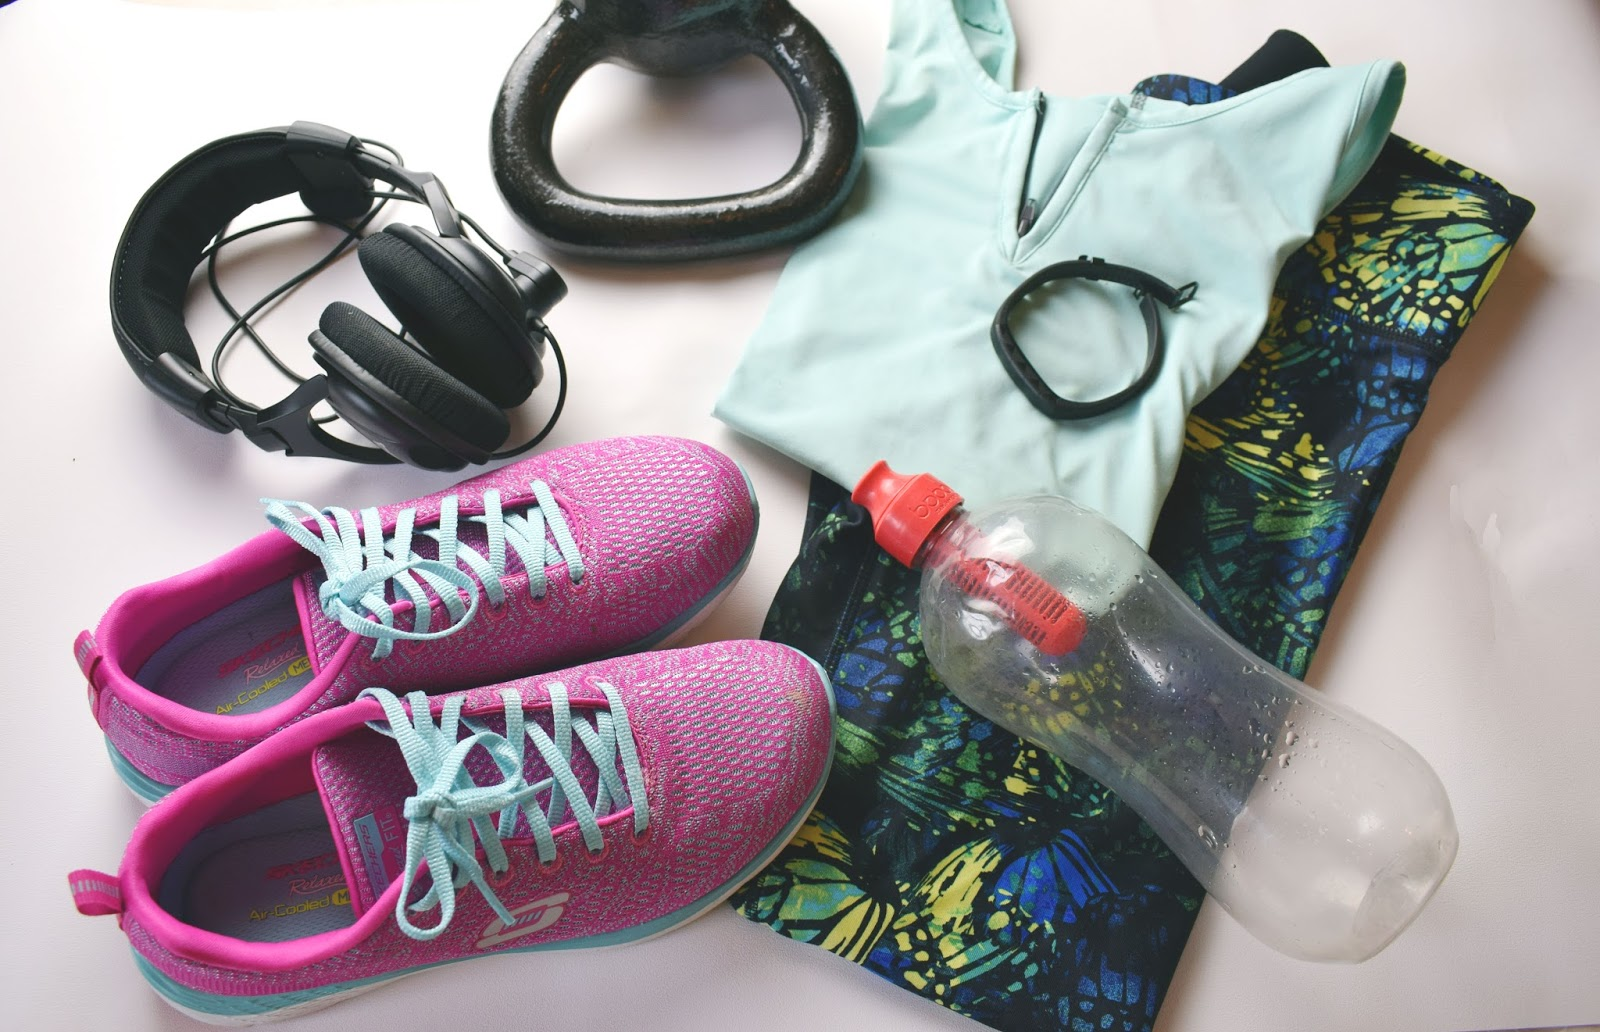 lebellelavie - Five items you need for your fitness regime